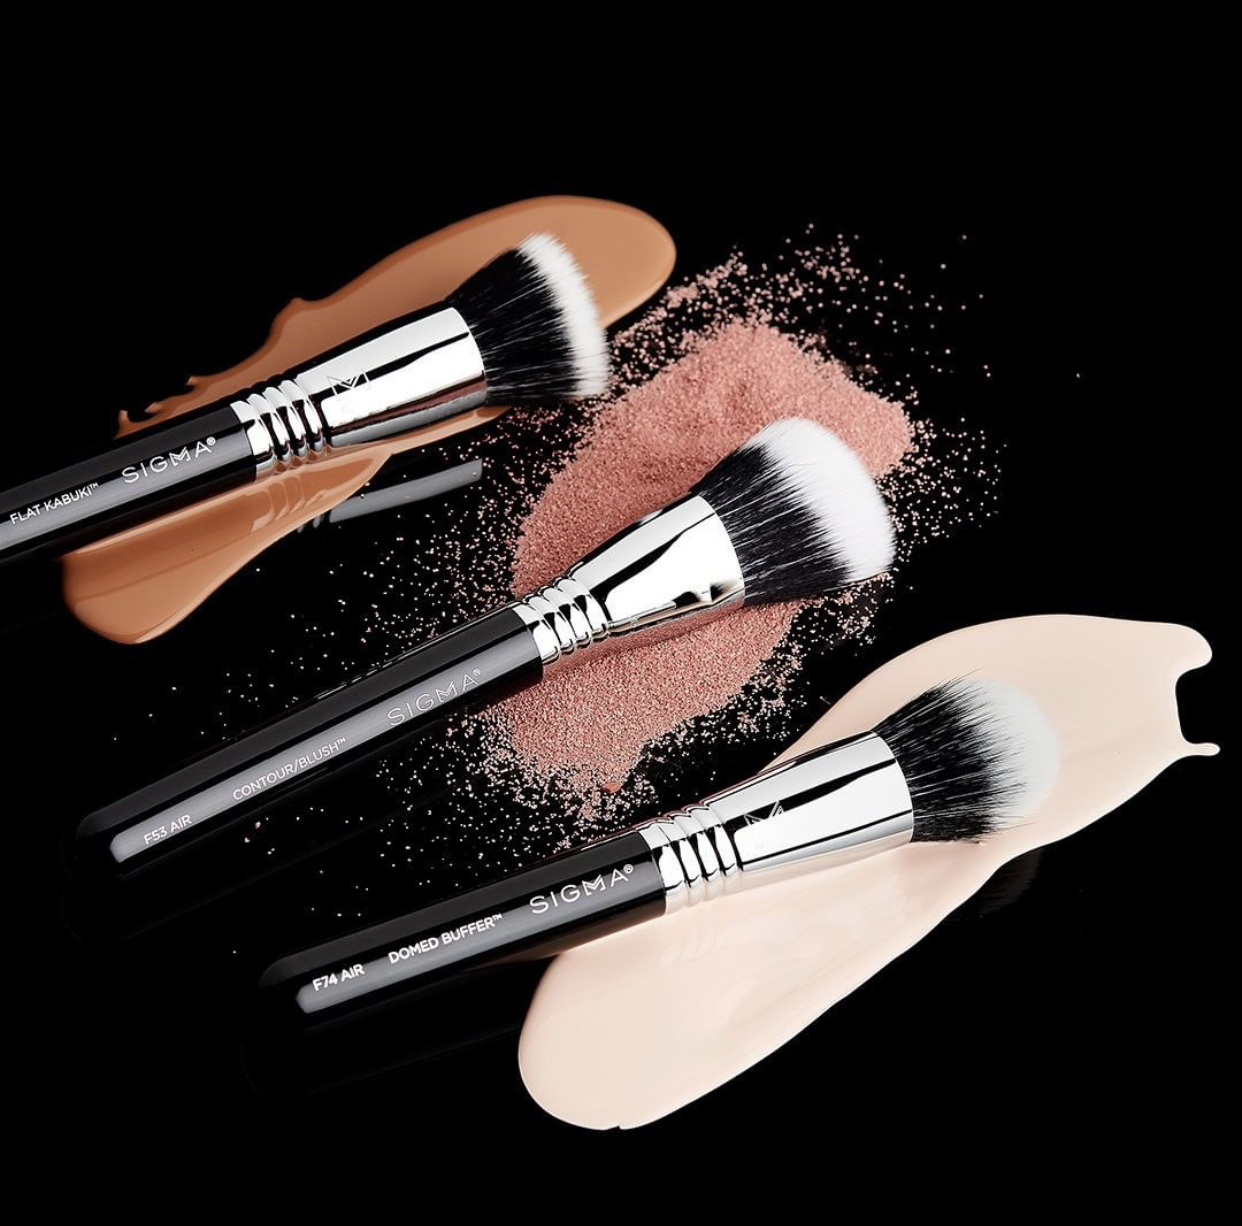 Sigma Complexion Air Makeup Brushes